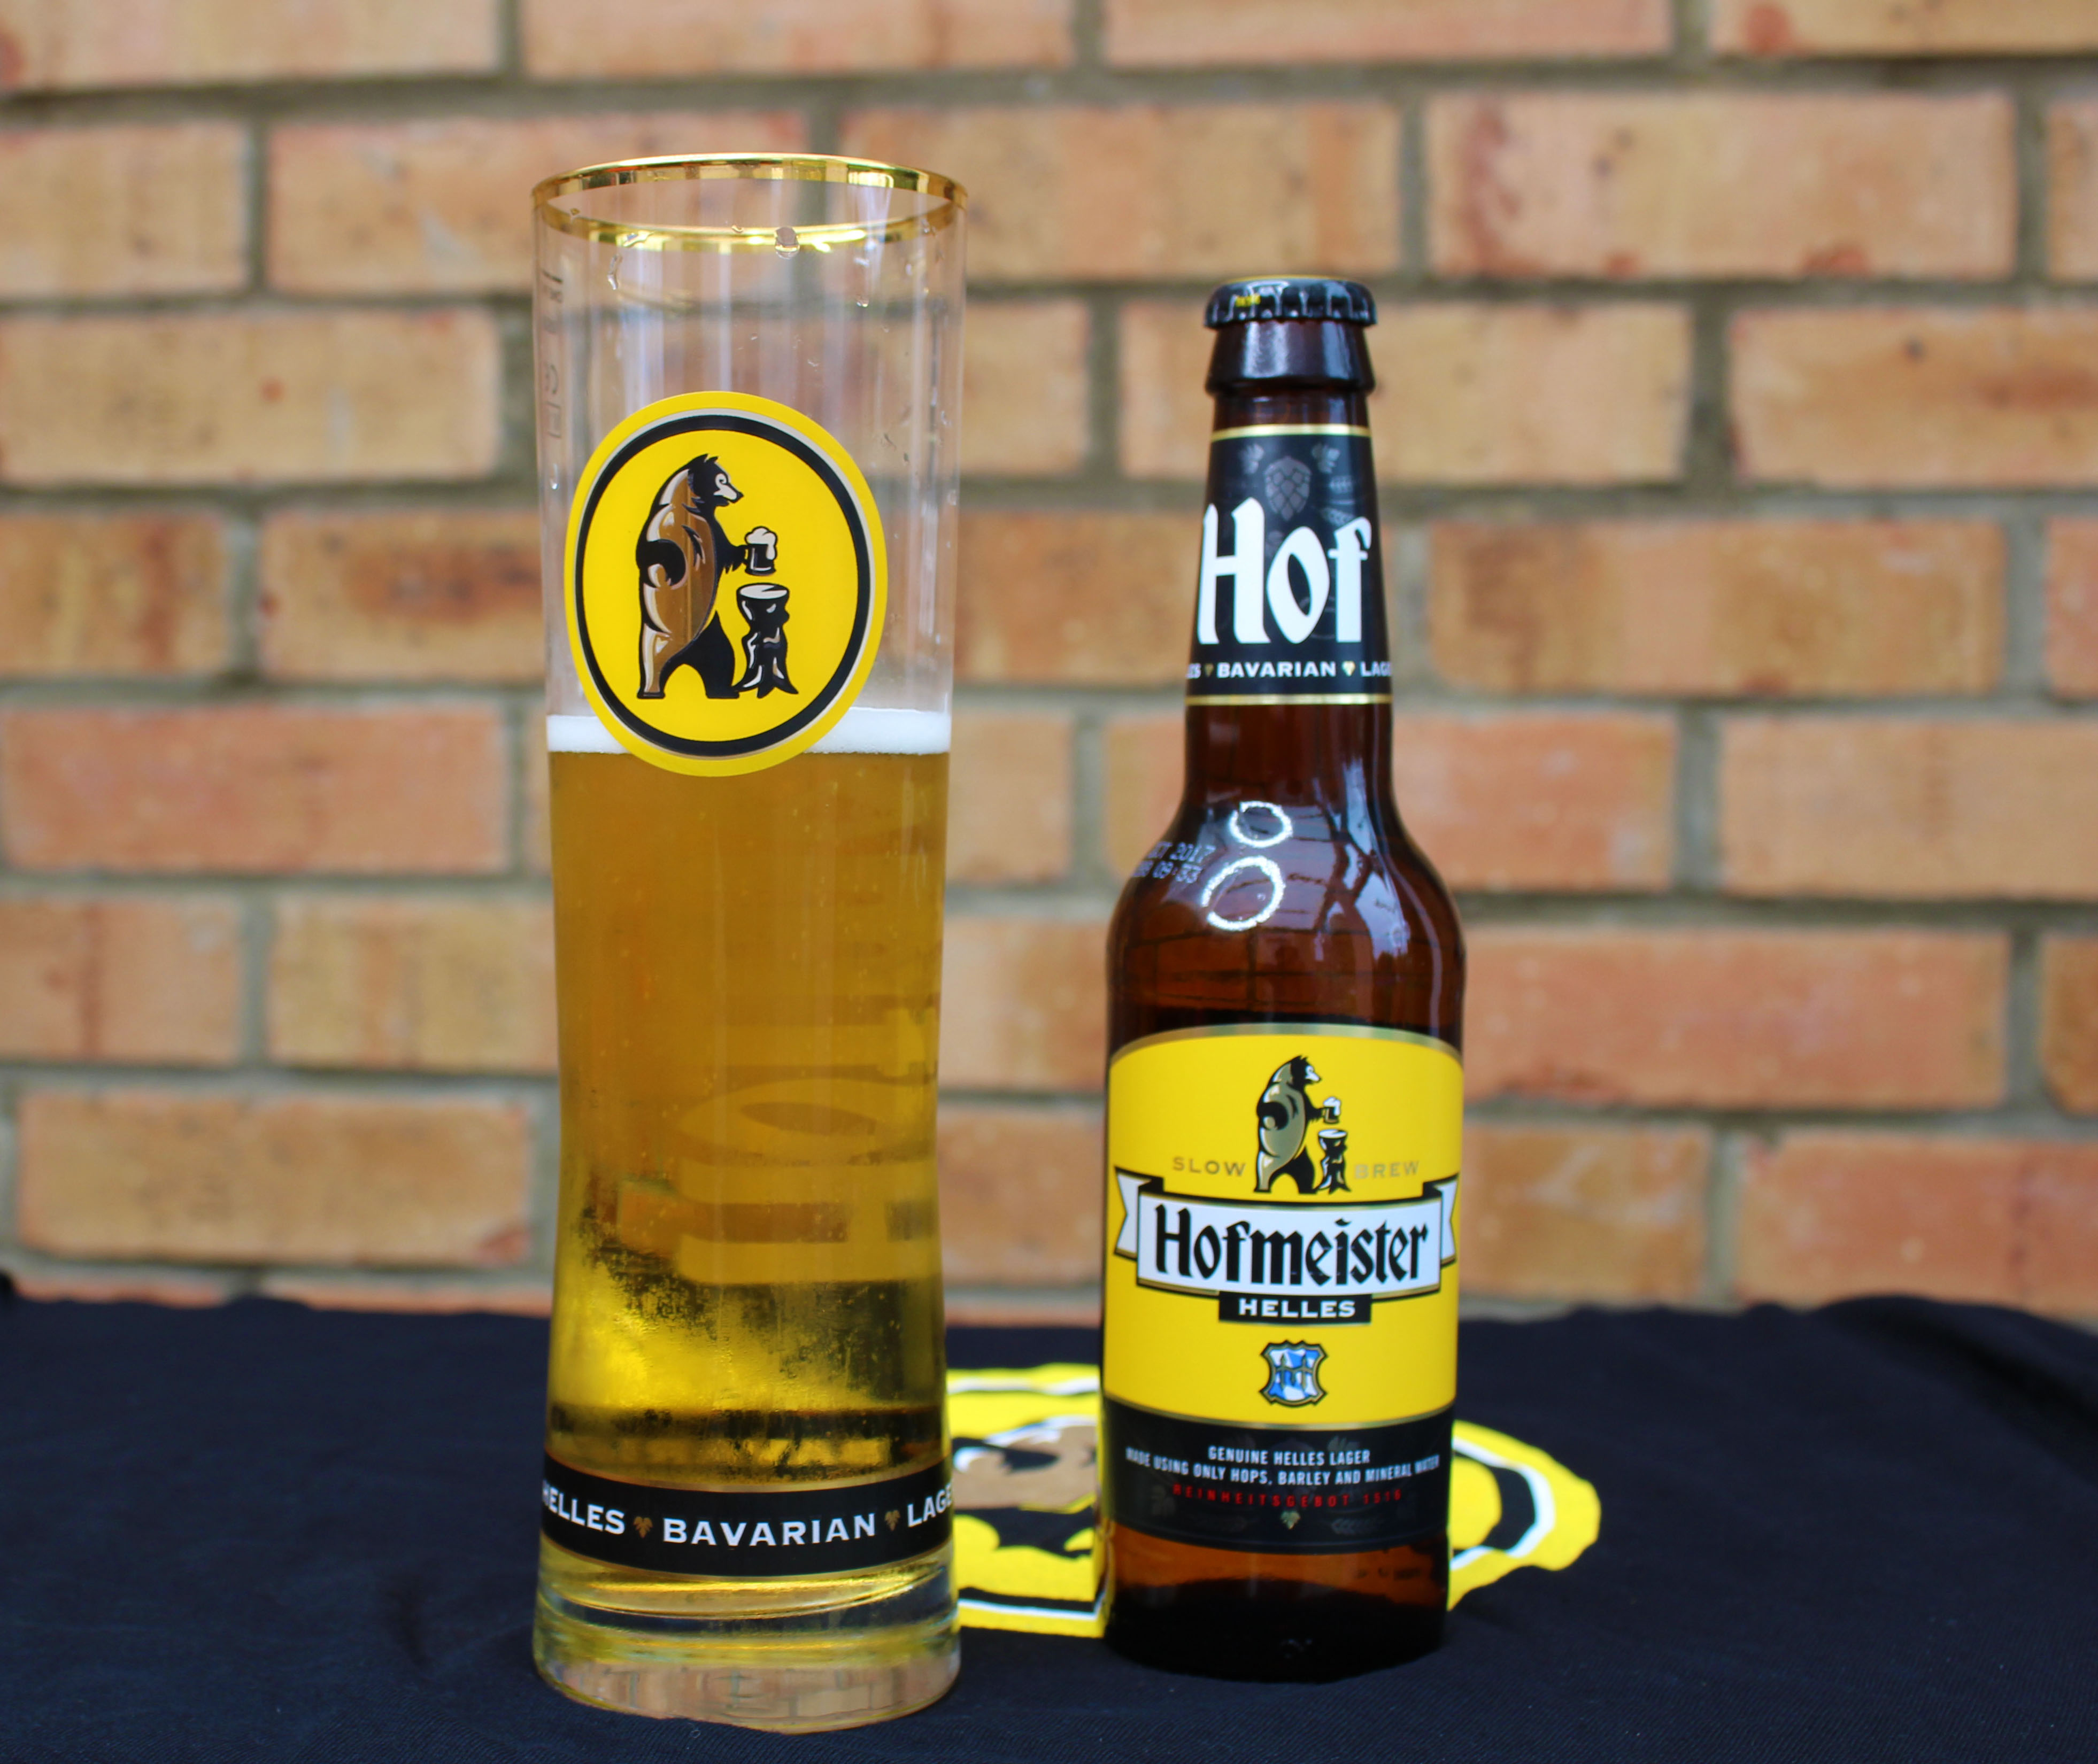 Follow the bear for a Hofmeister giveaway